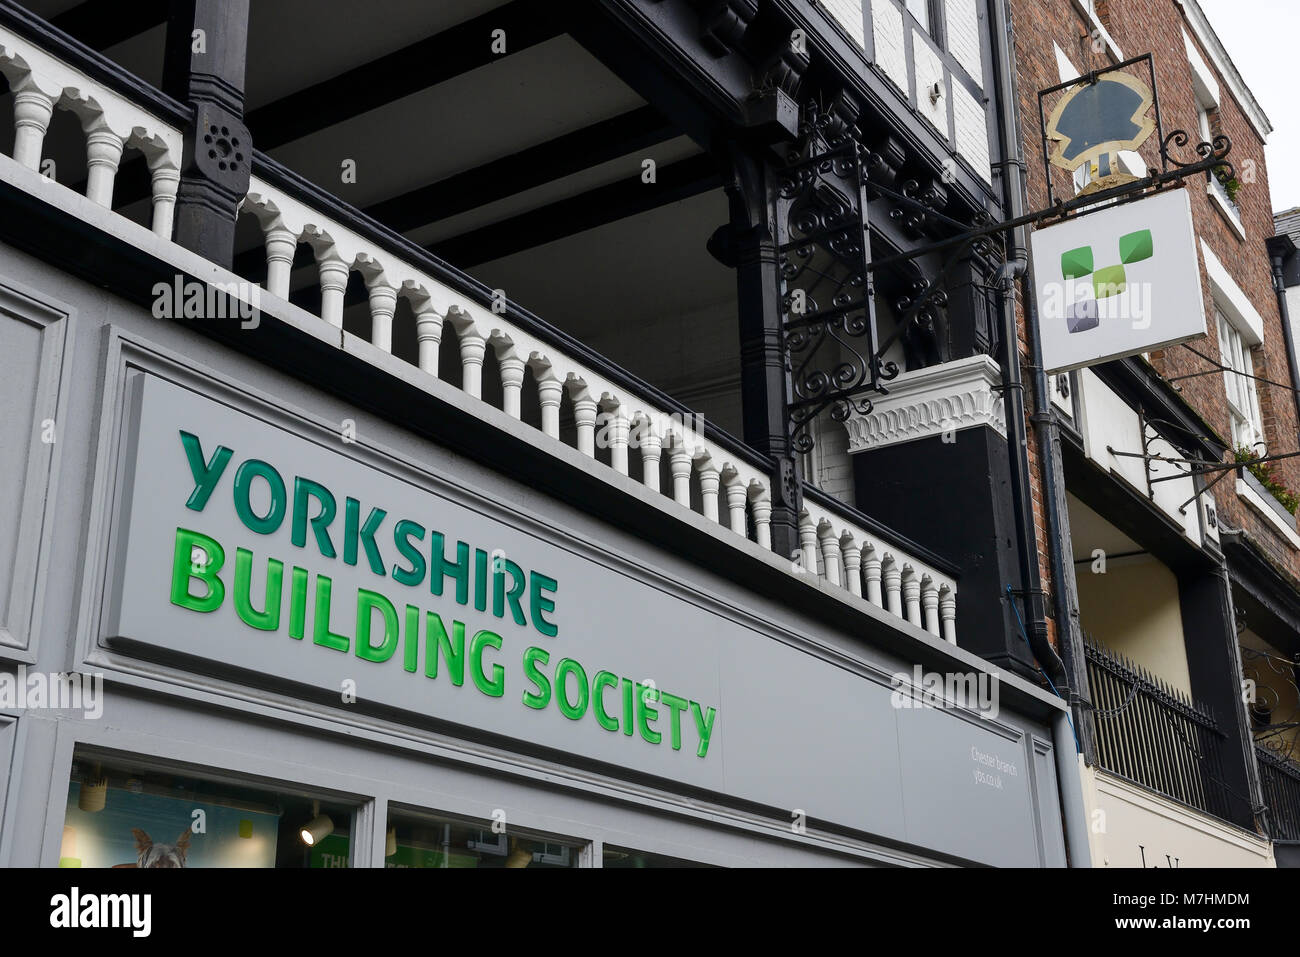 Yorkshire Building Society signage in Chester city centre UK - Stock Image